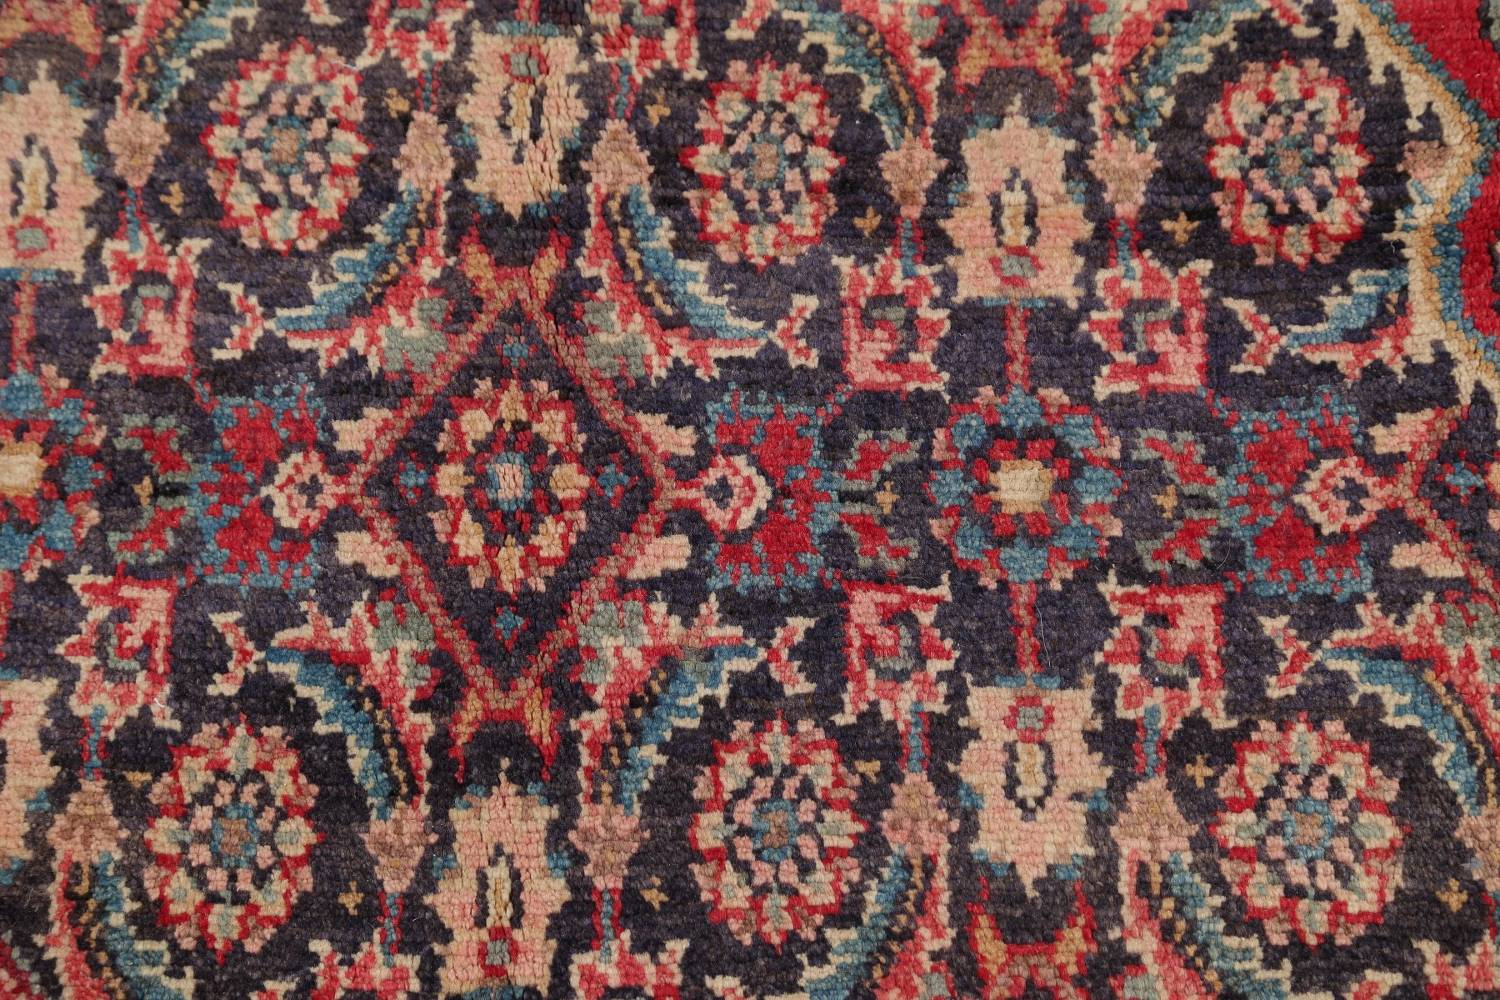 Antique Bakhtiari Persian Hand-Knotted 5x10 Wool Runner Rug image 8